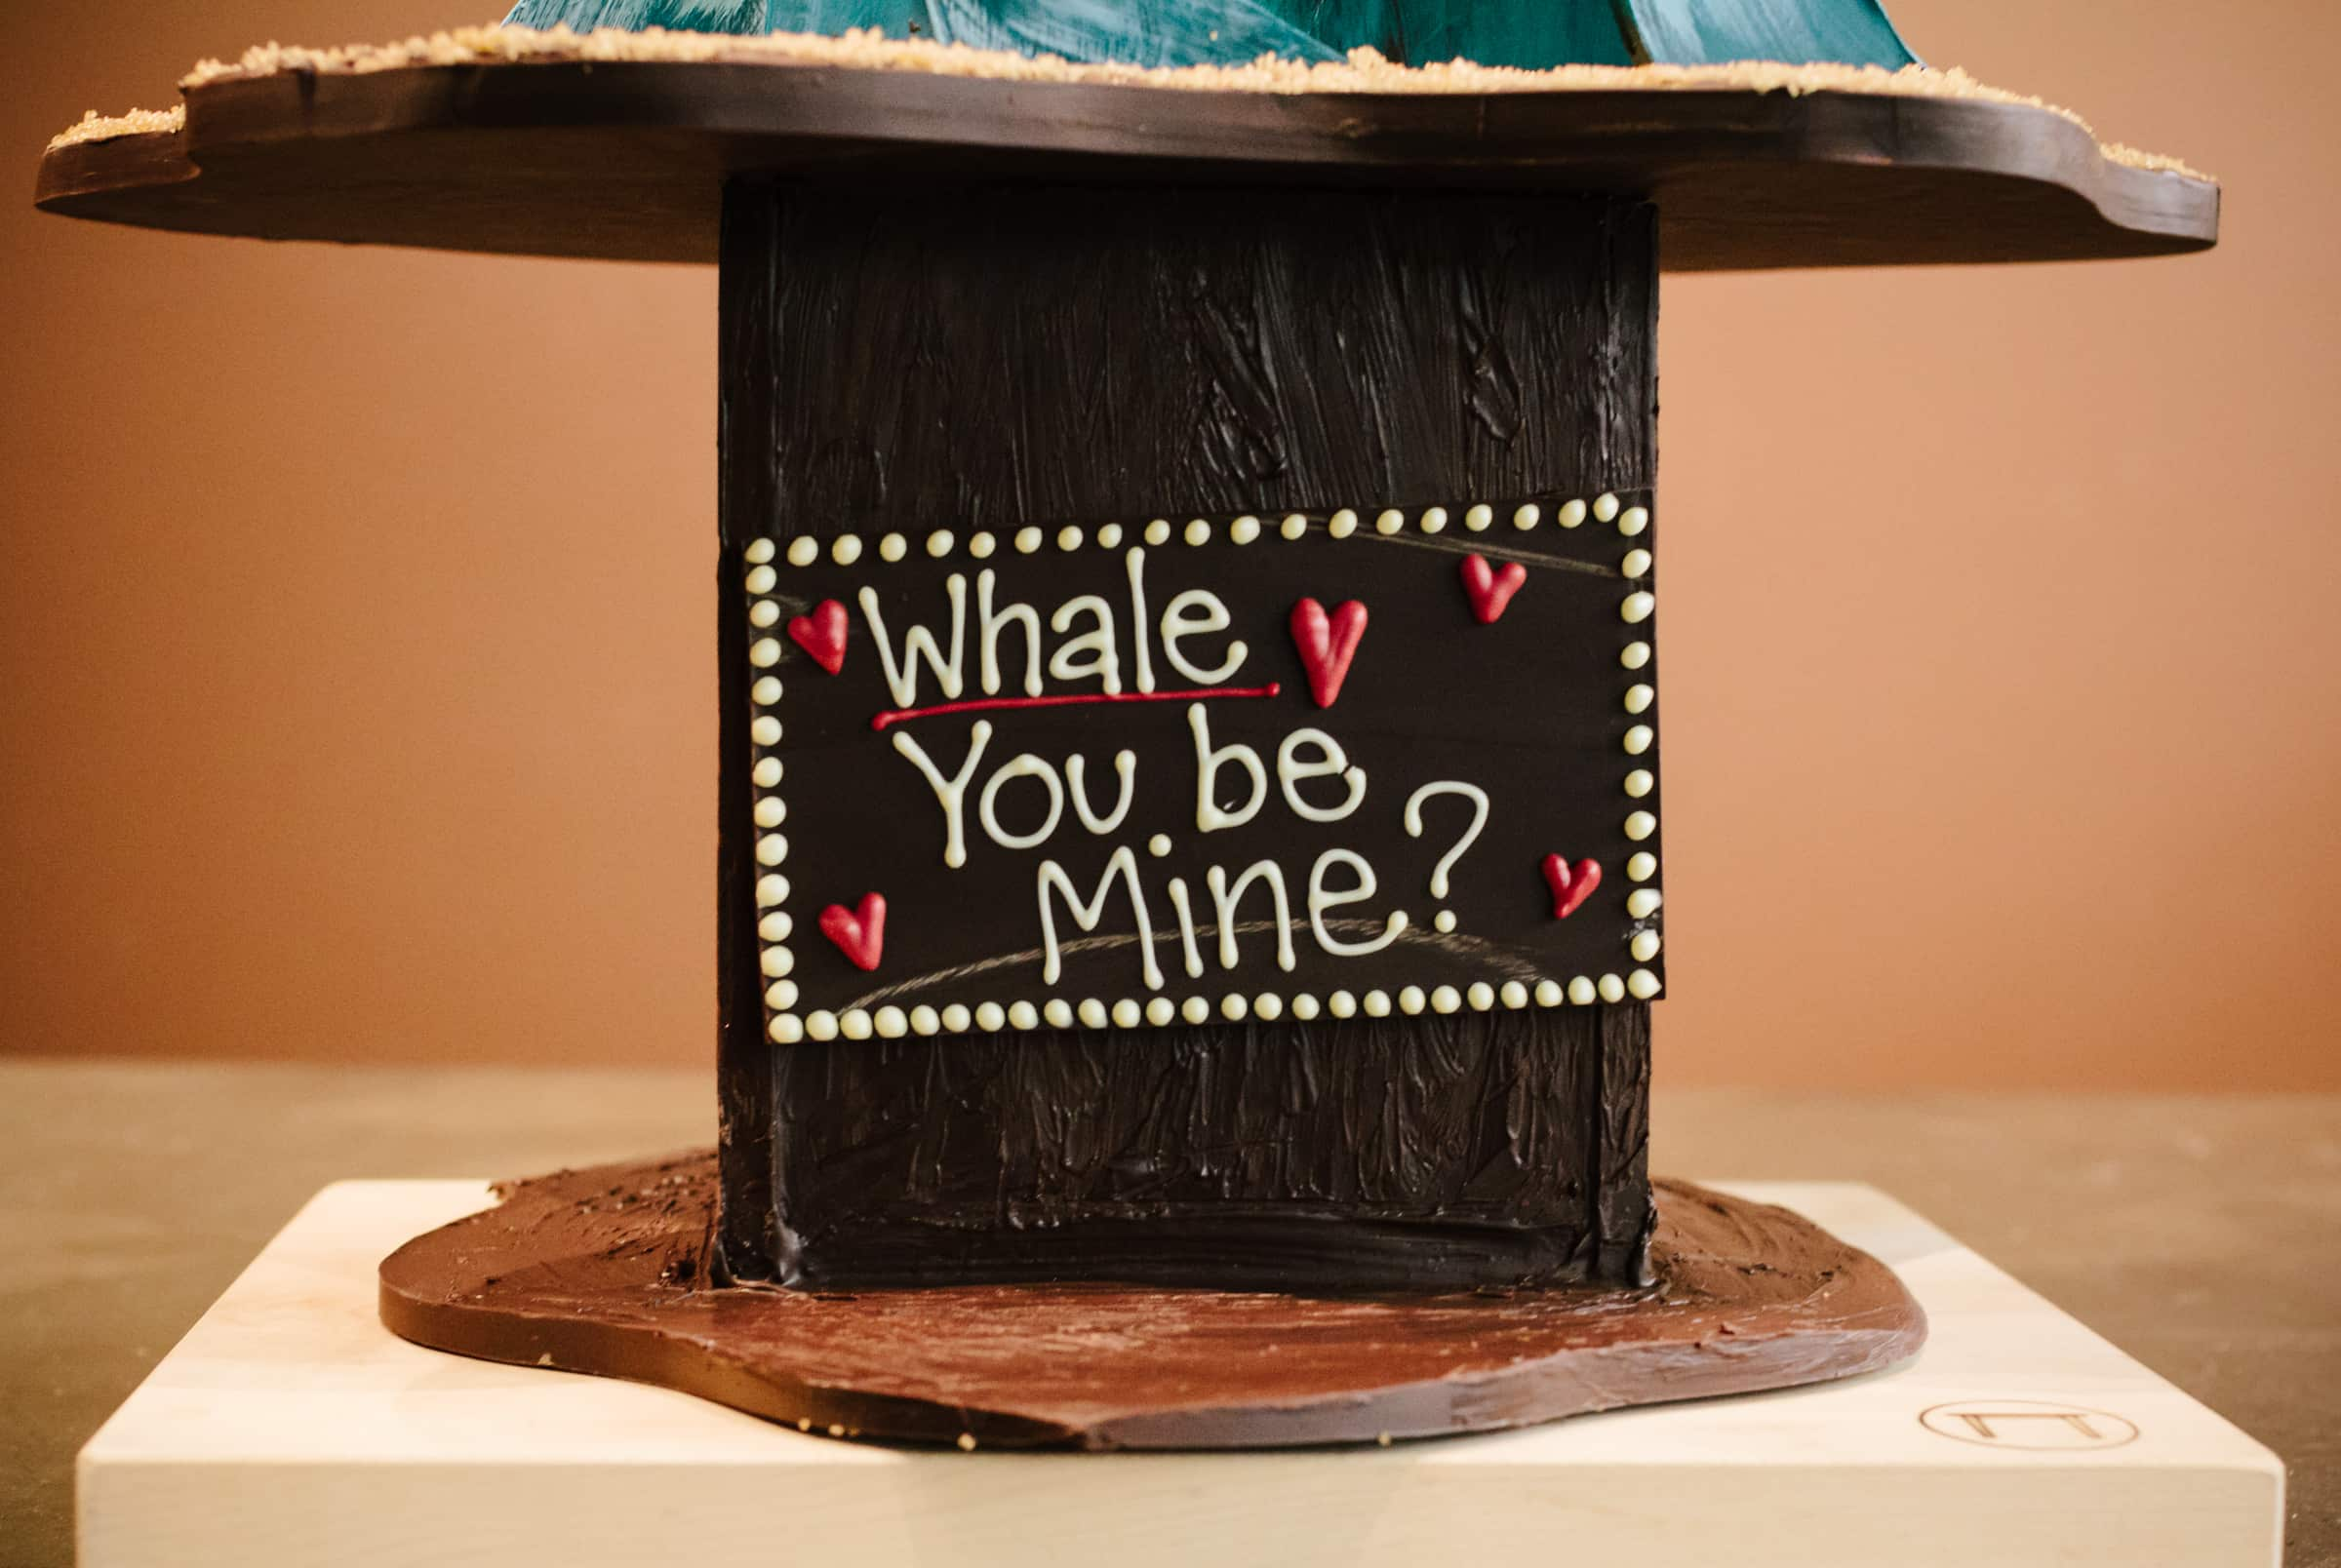 Whale You Be Mine? graphics